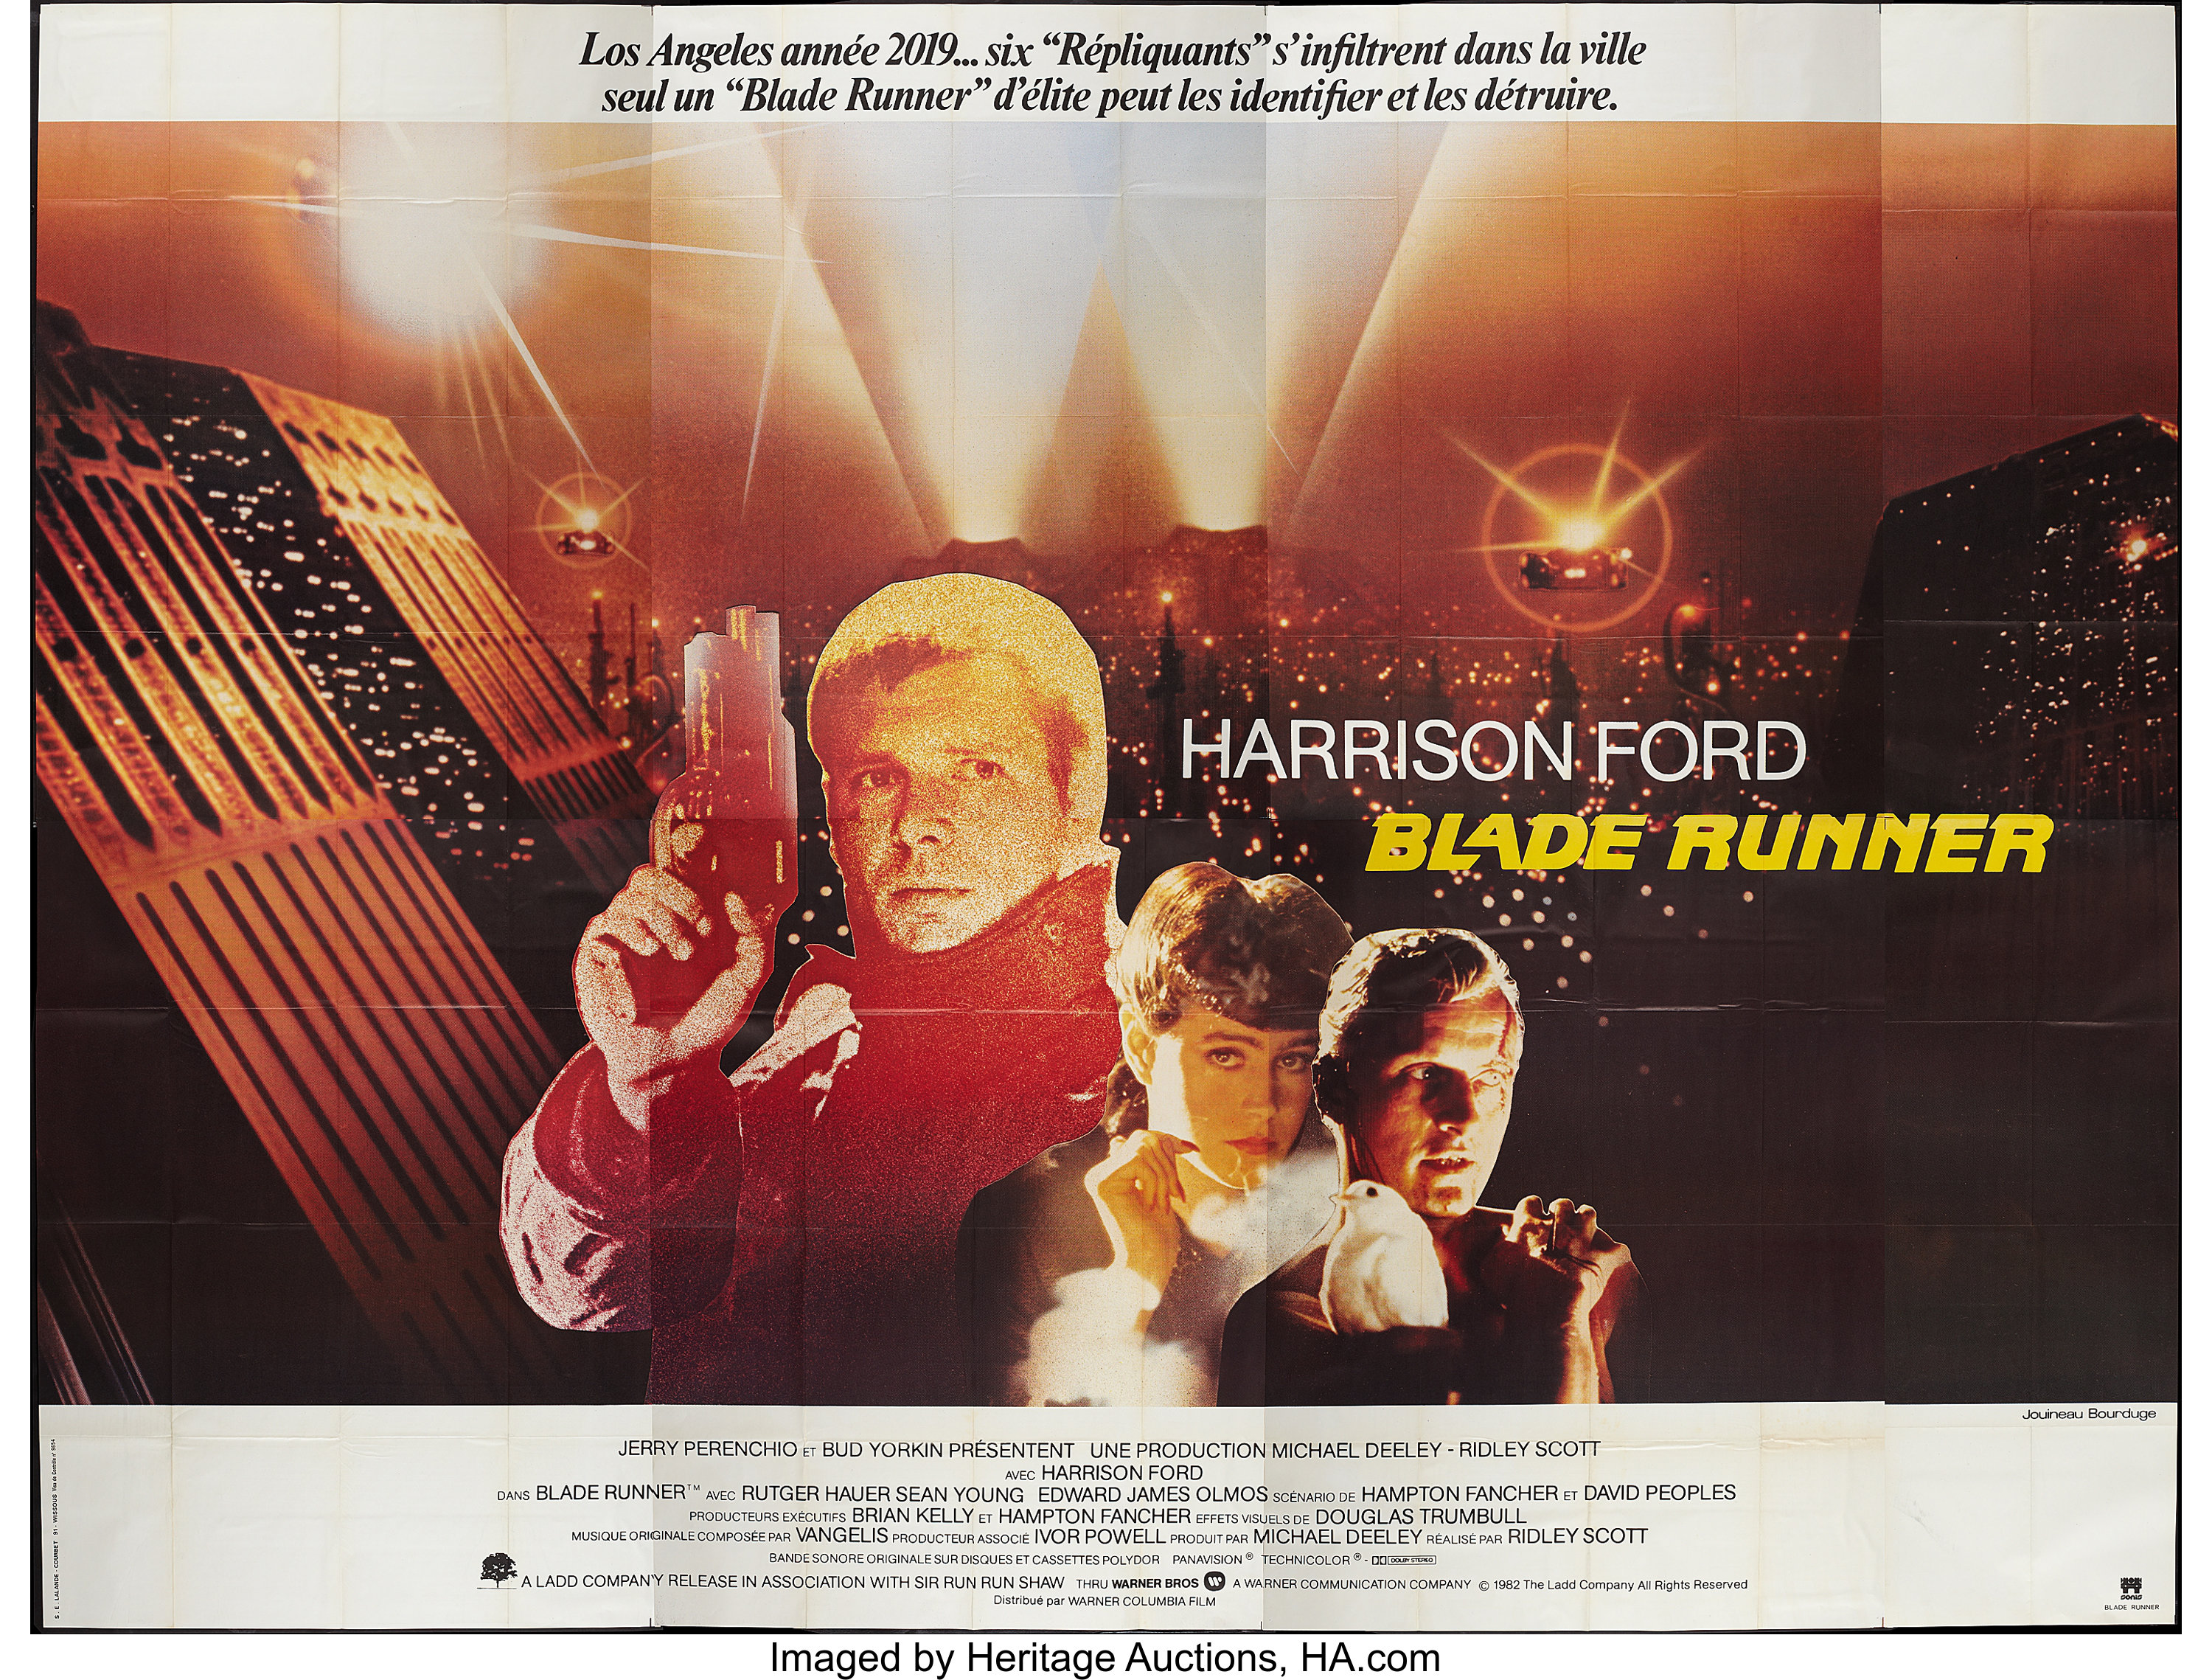 Sean Young Blade Runner Minimalist Movie Poster Rutger Hauer Harrison Ford